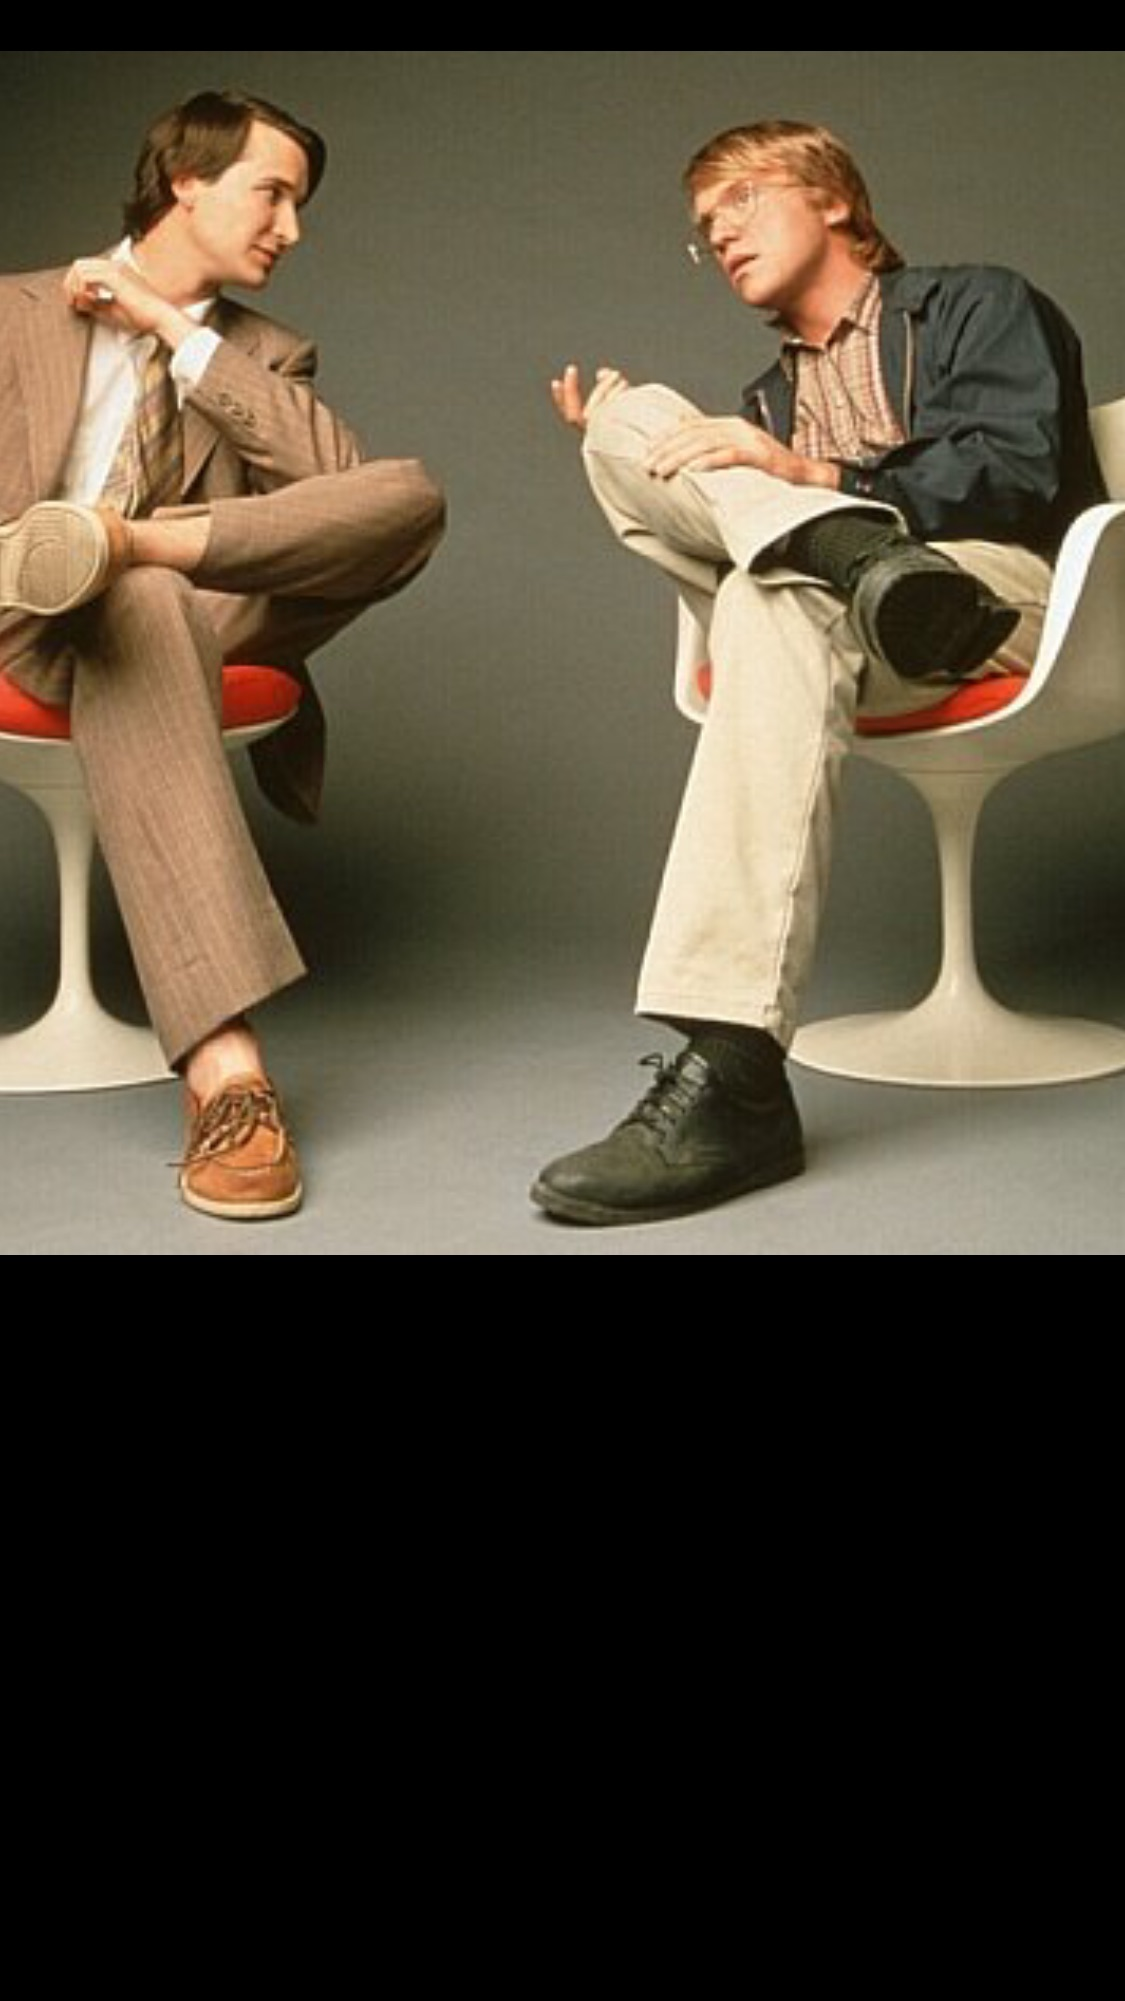 Noah Wyle and Anthony MichaelHall      as Steve Jobs and Bill Gates.